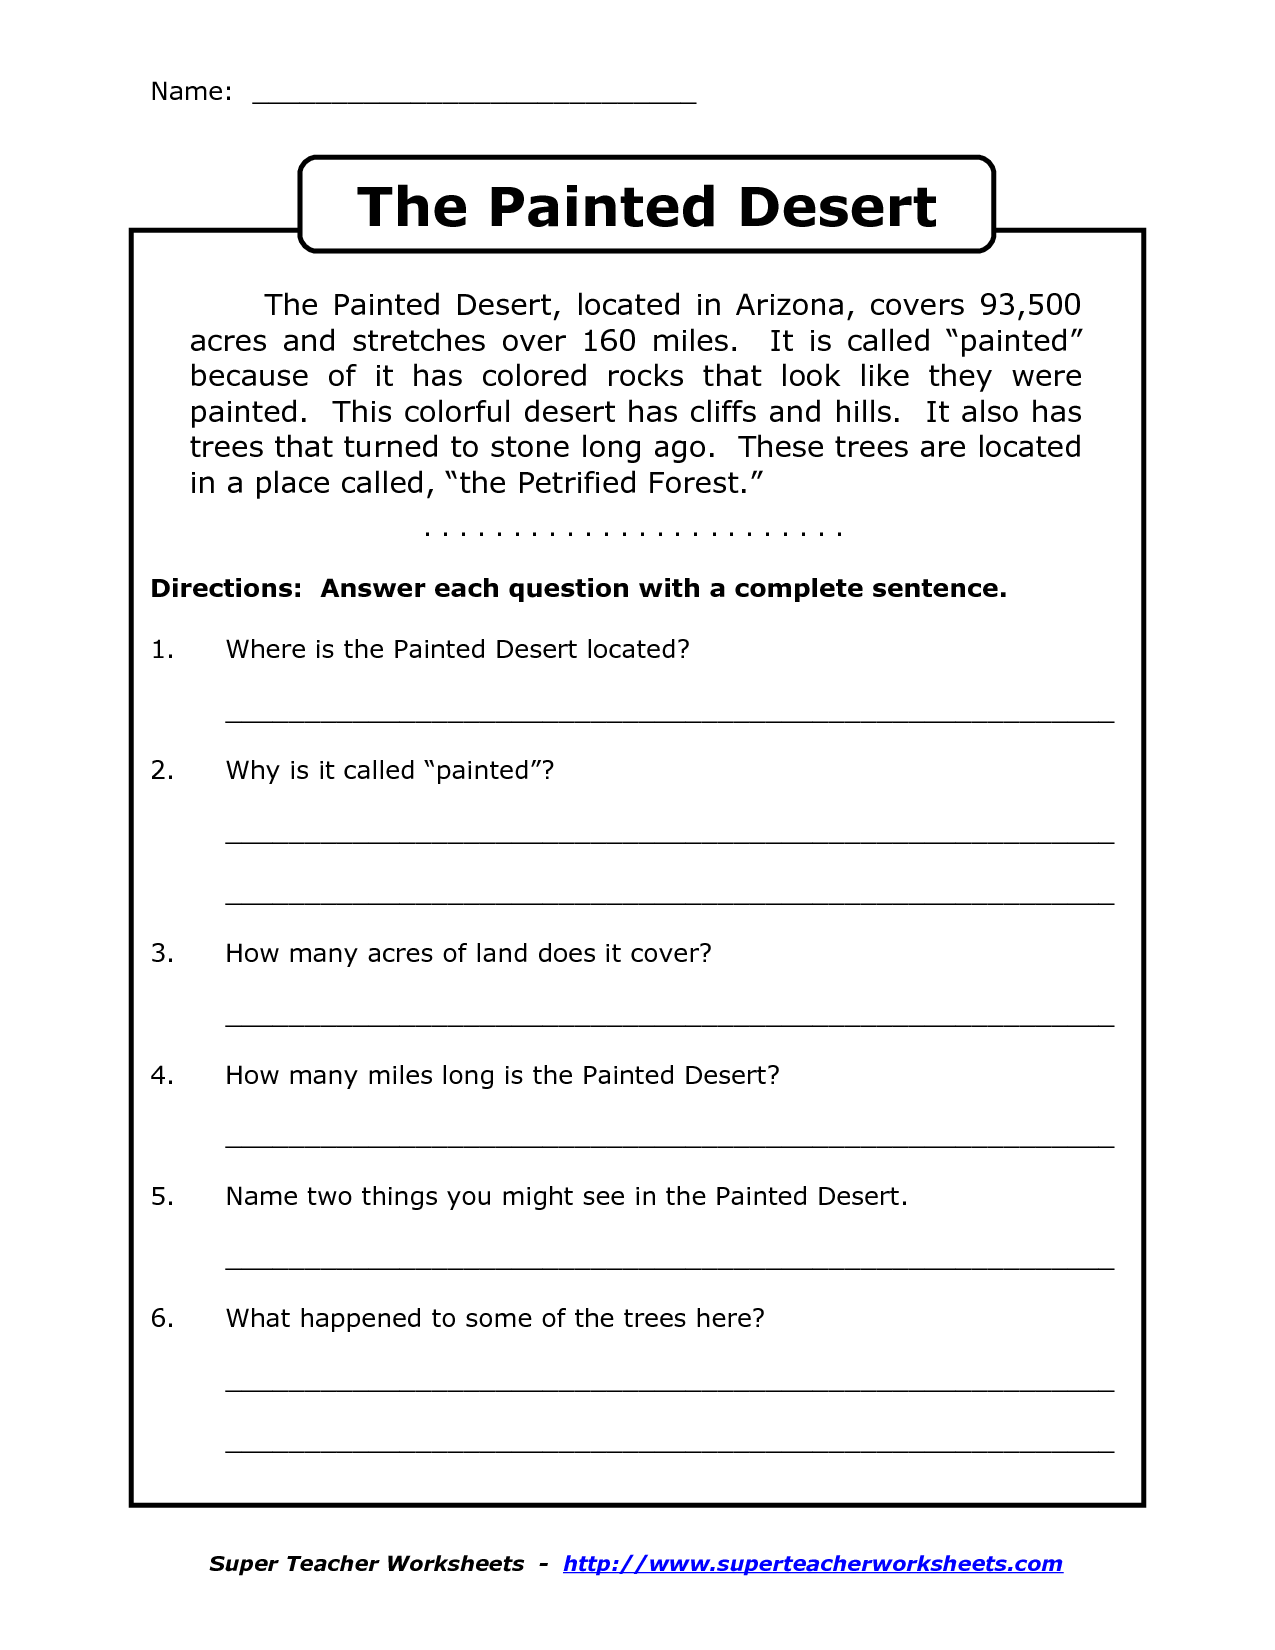 Worksheets Reading Worksheets Grade 5 reading worksheets for 4th grade comprehension 3 name the painted desert